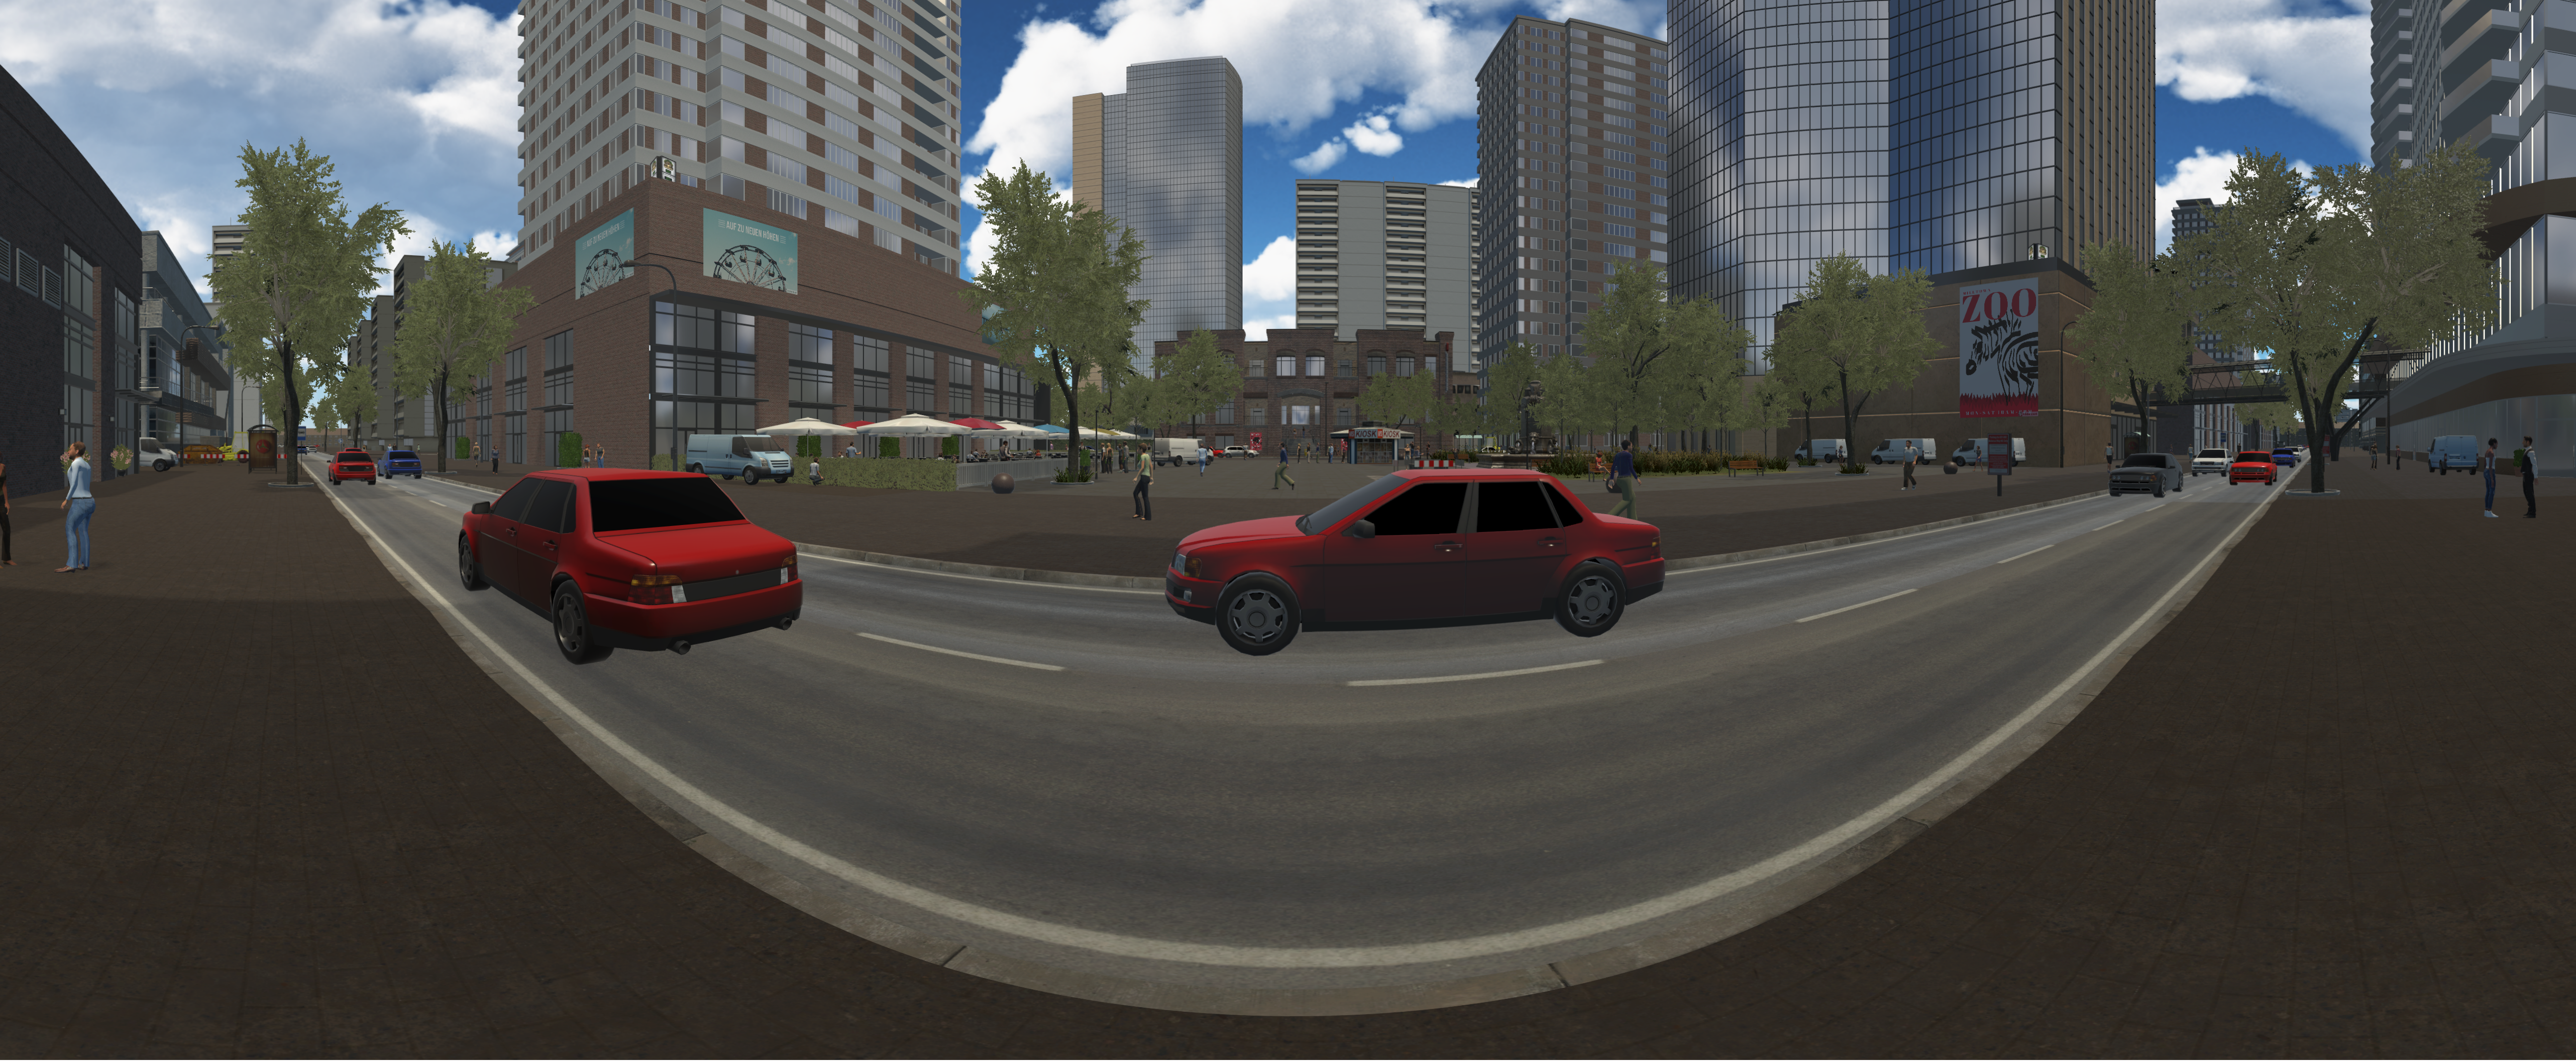 iVRoad: Immersive virtual road crossing as an assessment tool for unilateral spatial neglect